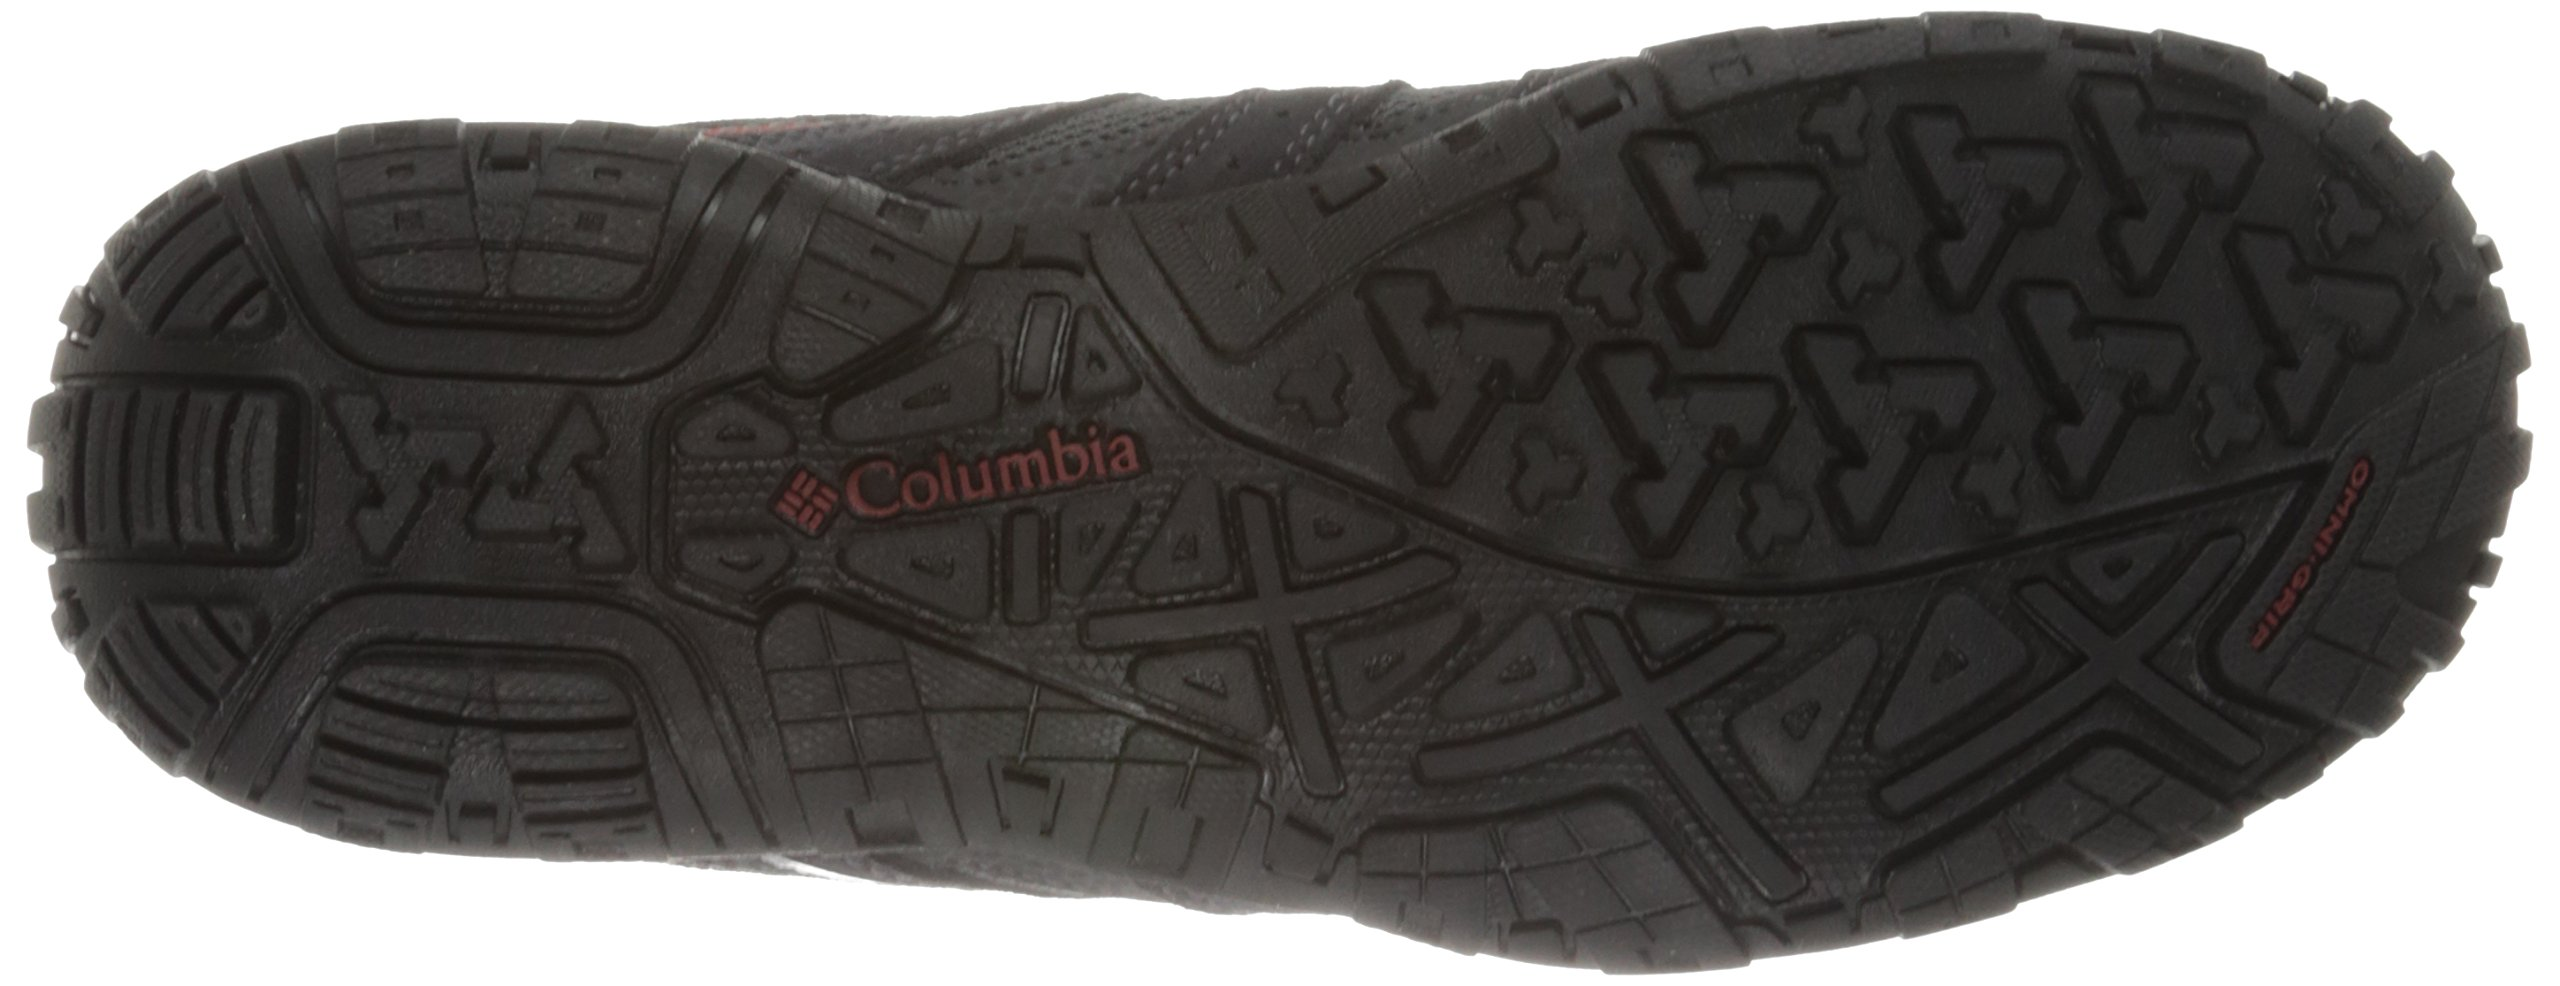 Columbia Men's Redmond Waterproof, Charcoal/Garnet Red 7 M US by Columbia (Image #3)